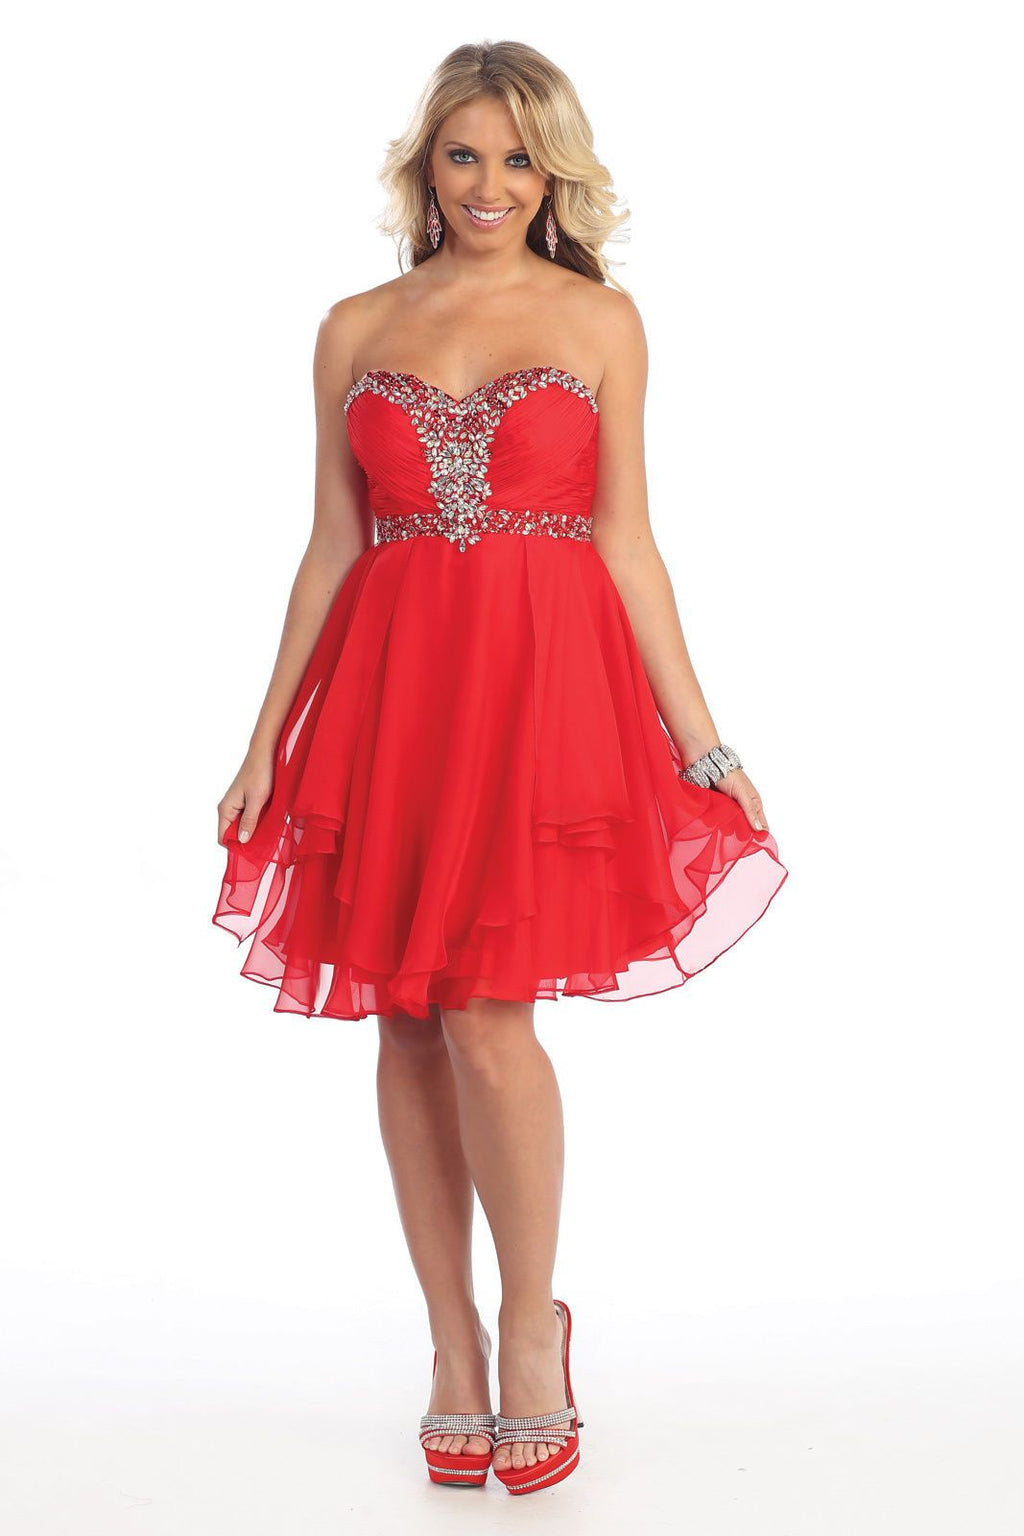 Short Prom Plus Size Homecoming Cocktail Dress - The Dress Outlet Red